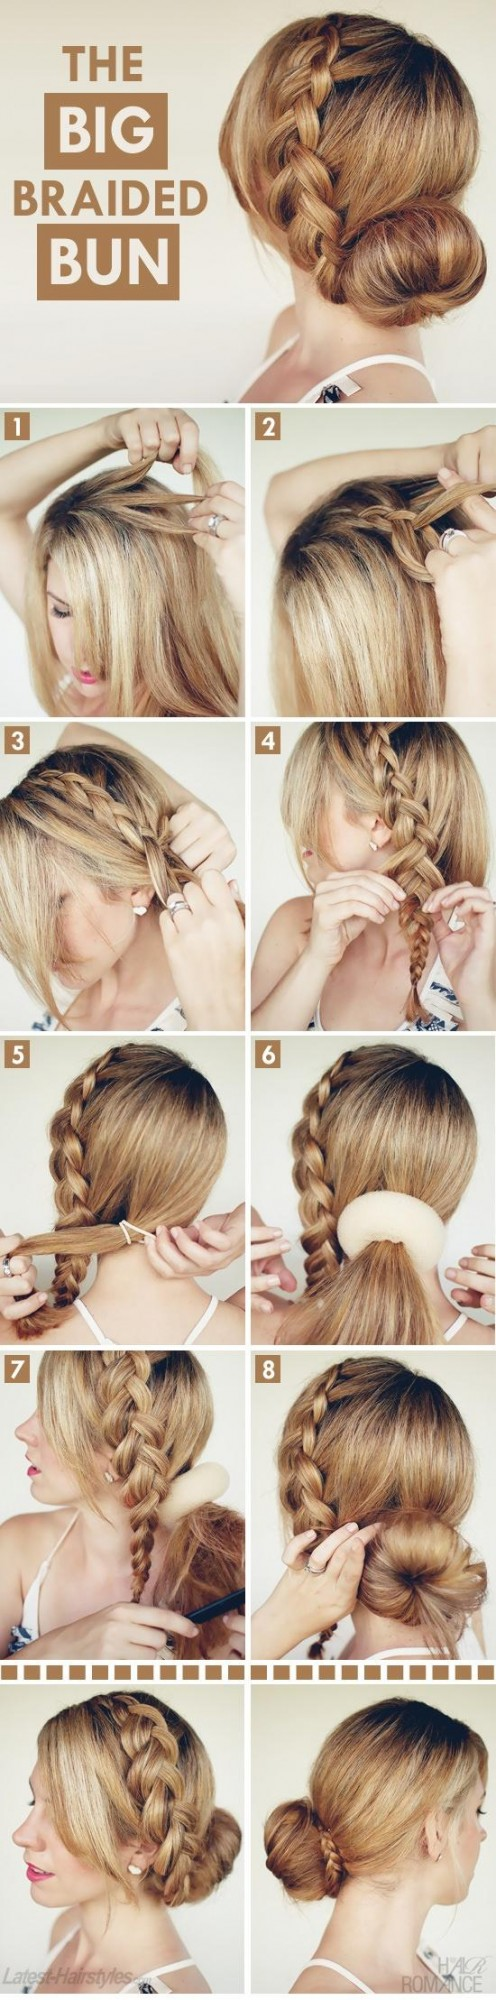 32 Amazing And Easy Hairstyles Tutorials For Hot Summer Days Style